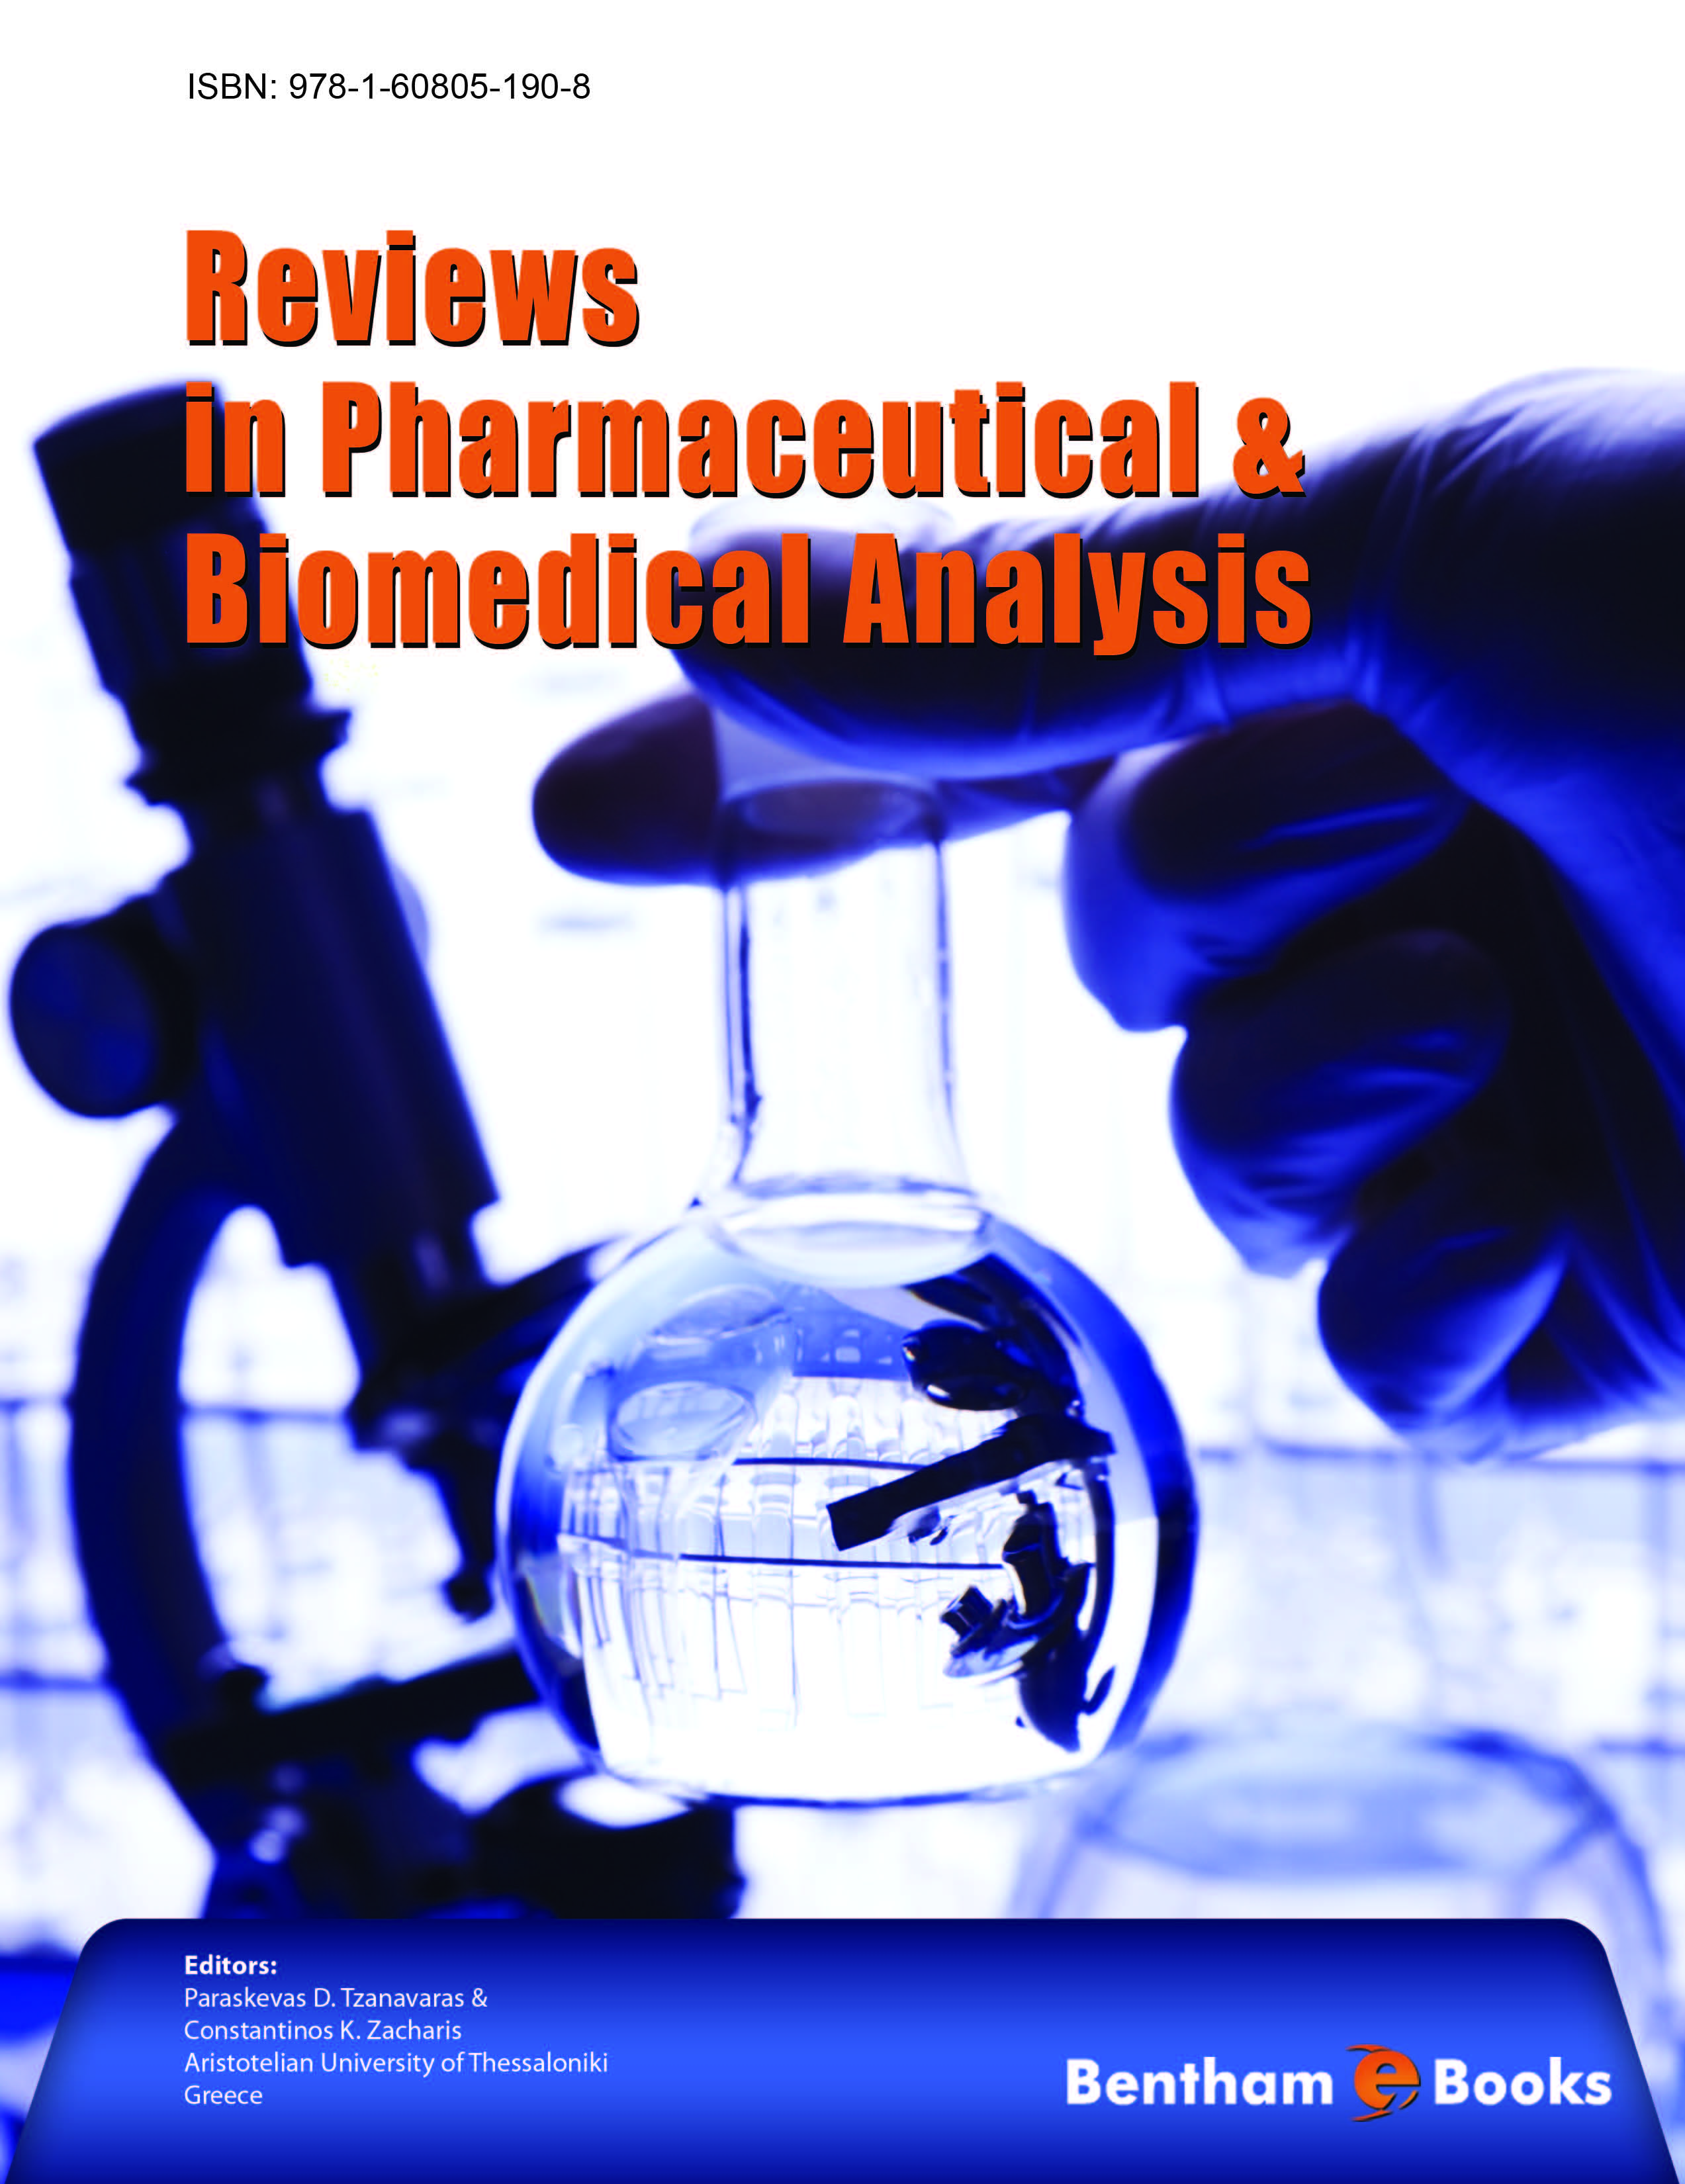 Reviews in Pharmaceutical and Biomedical Analysis